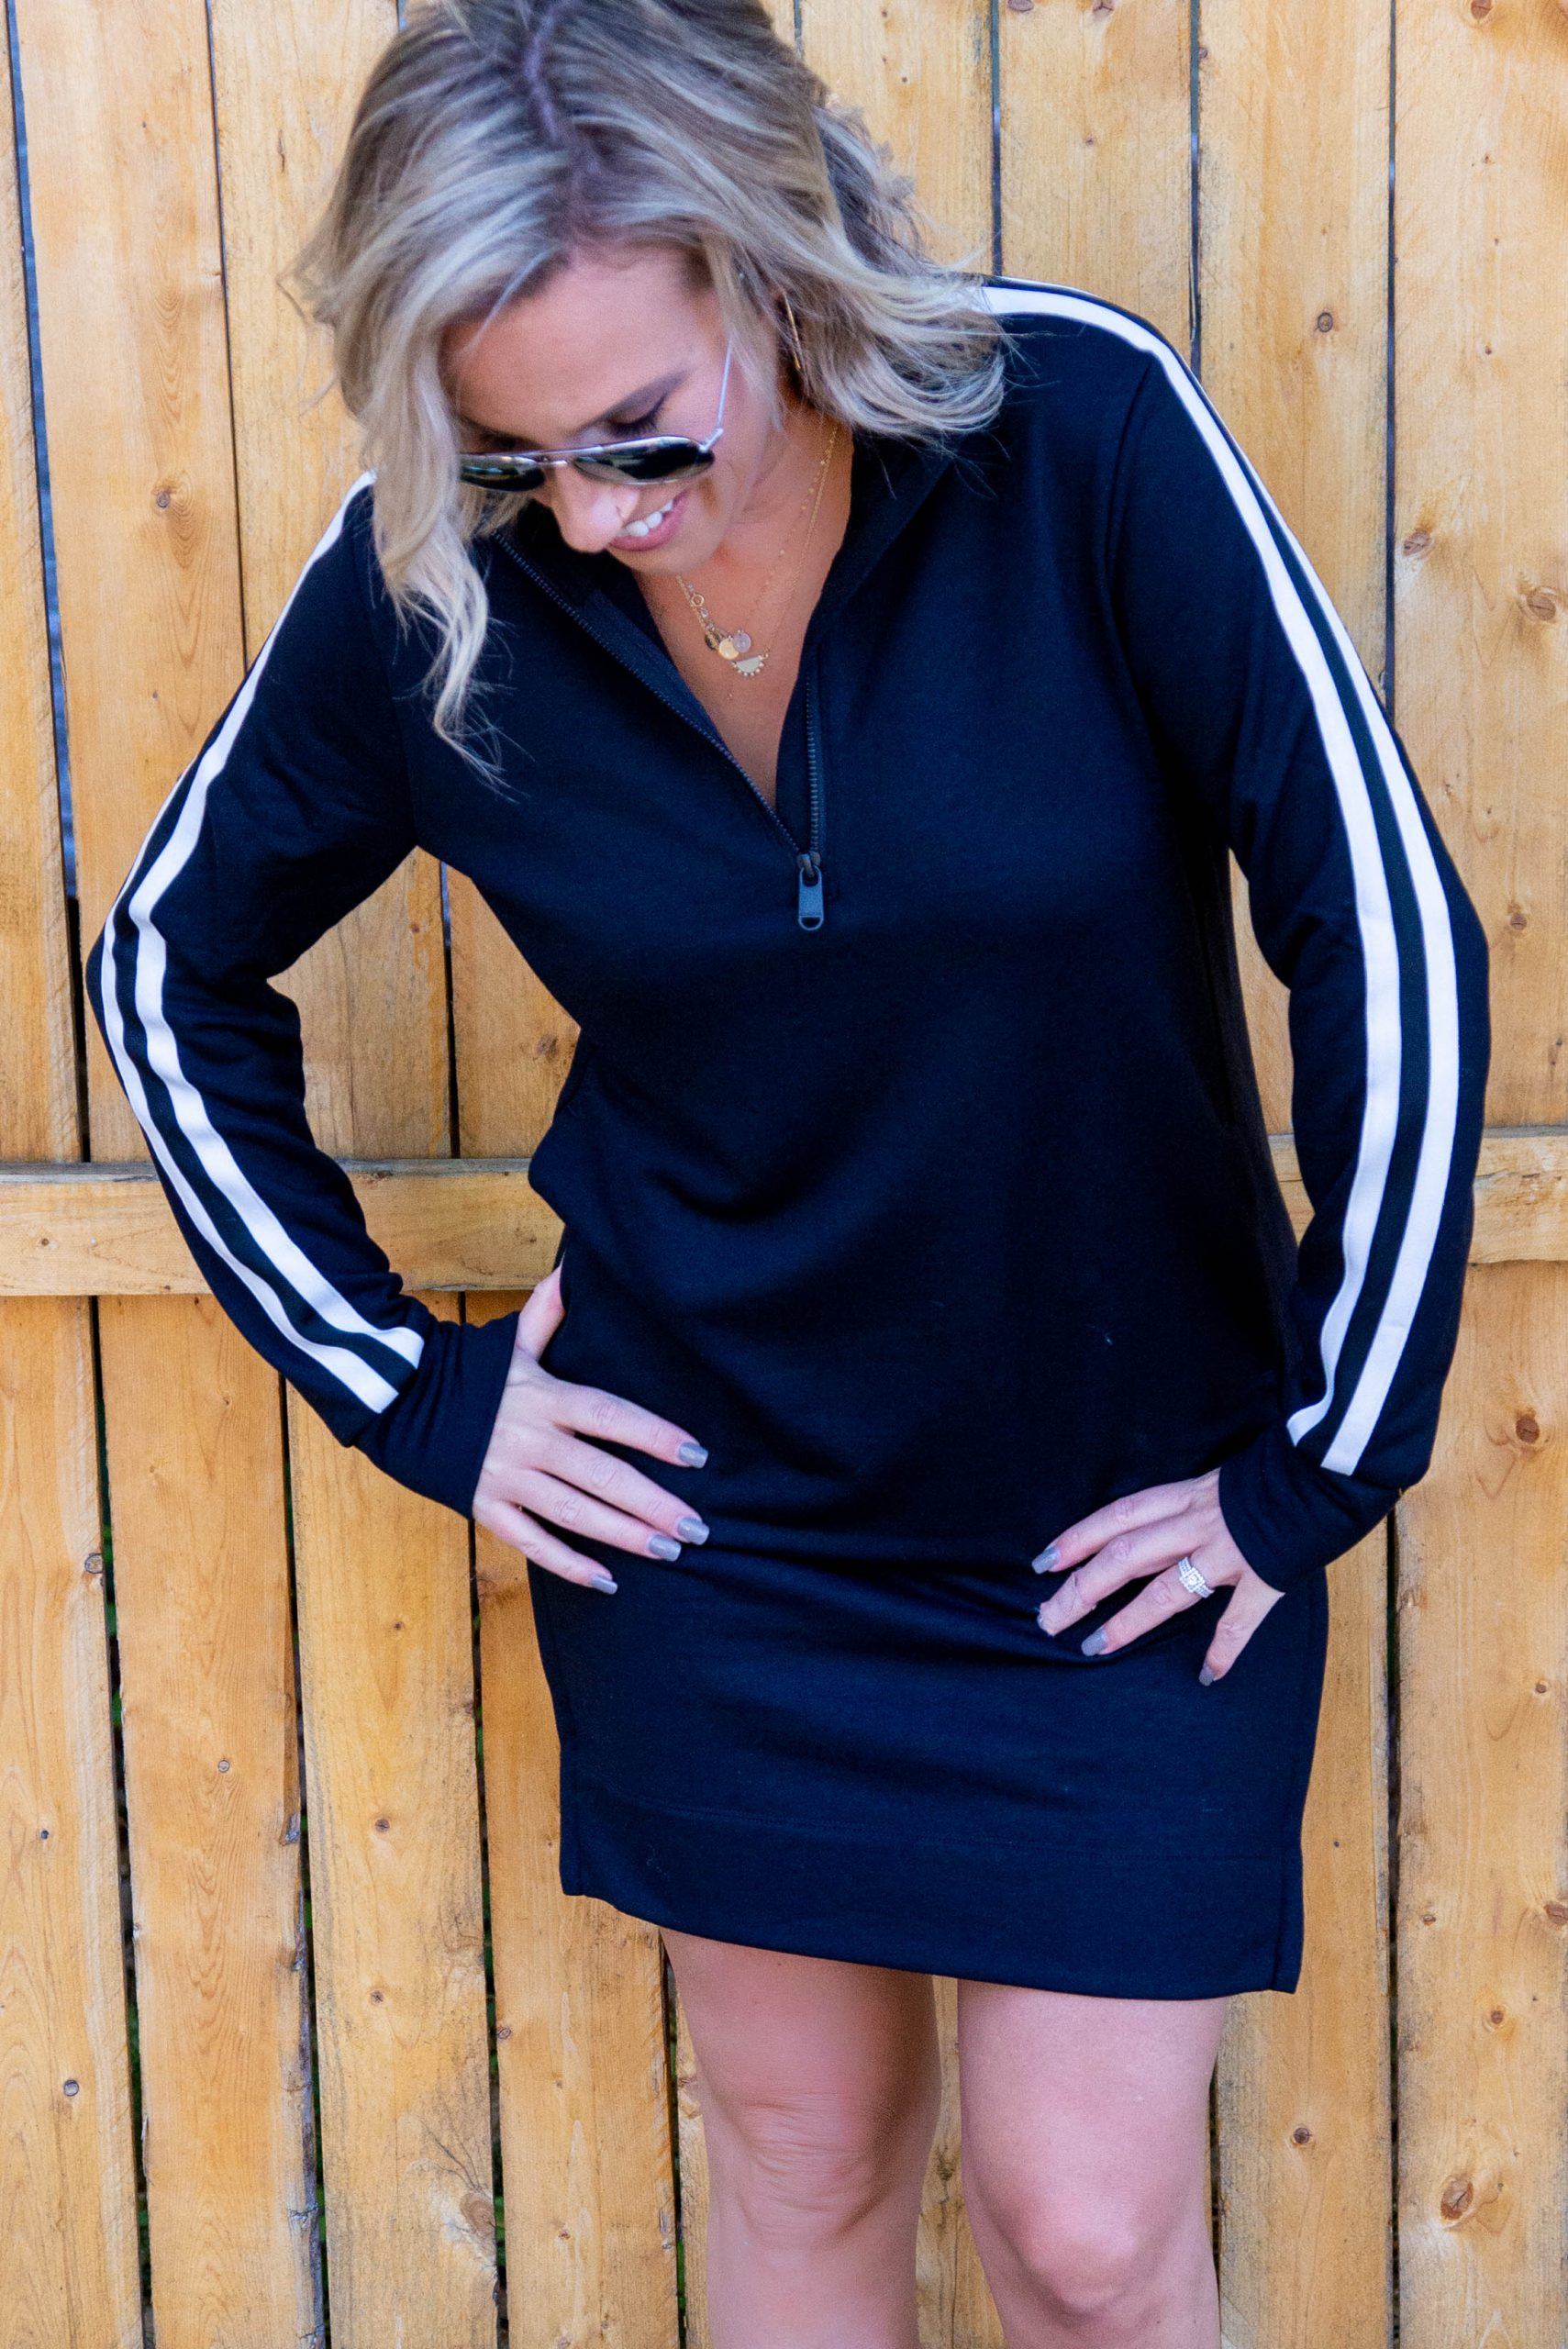 We fell for Athleta at just the right time. These cozy Salutation joggers, this cute Crosstown track dress...Seriously swoonworthy loungewear...